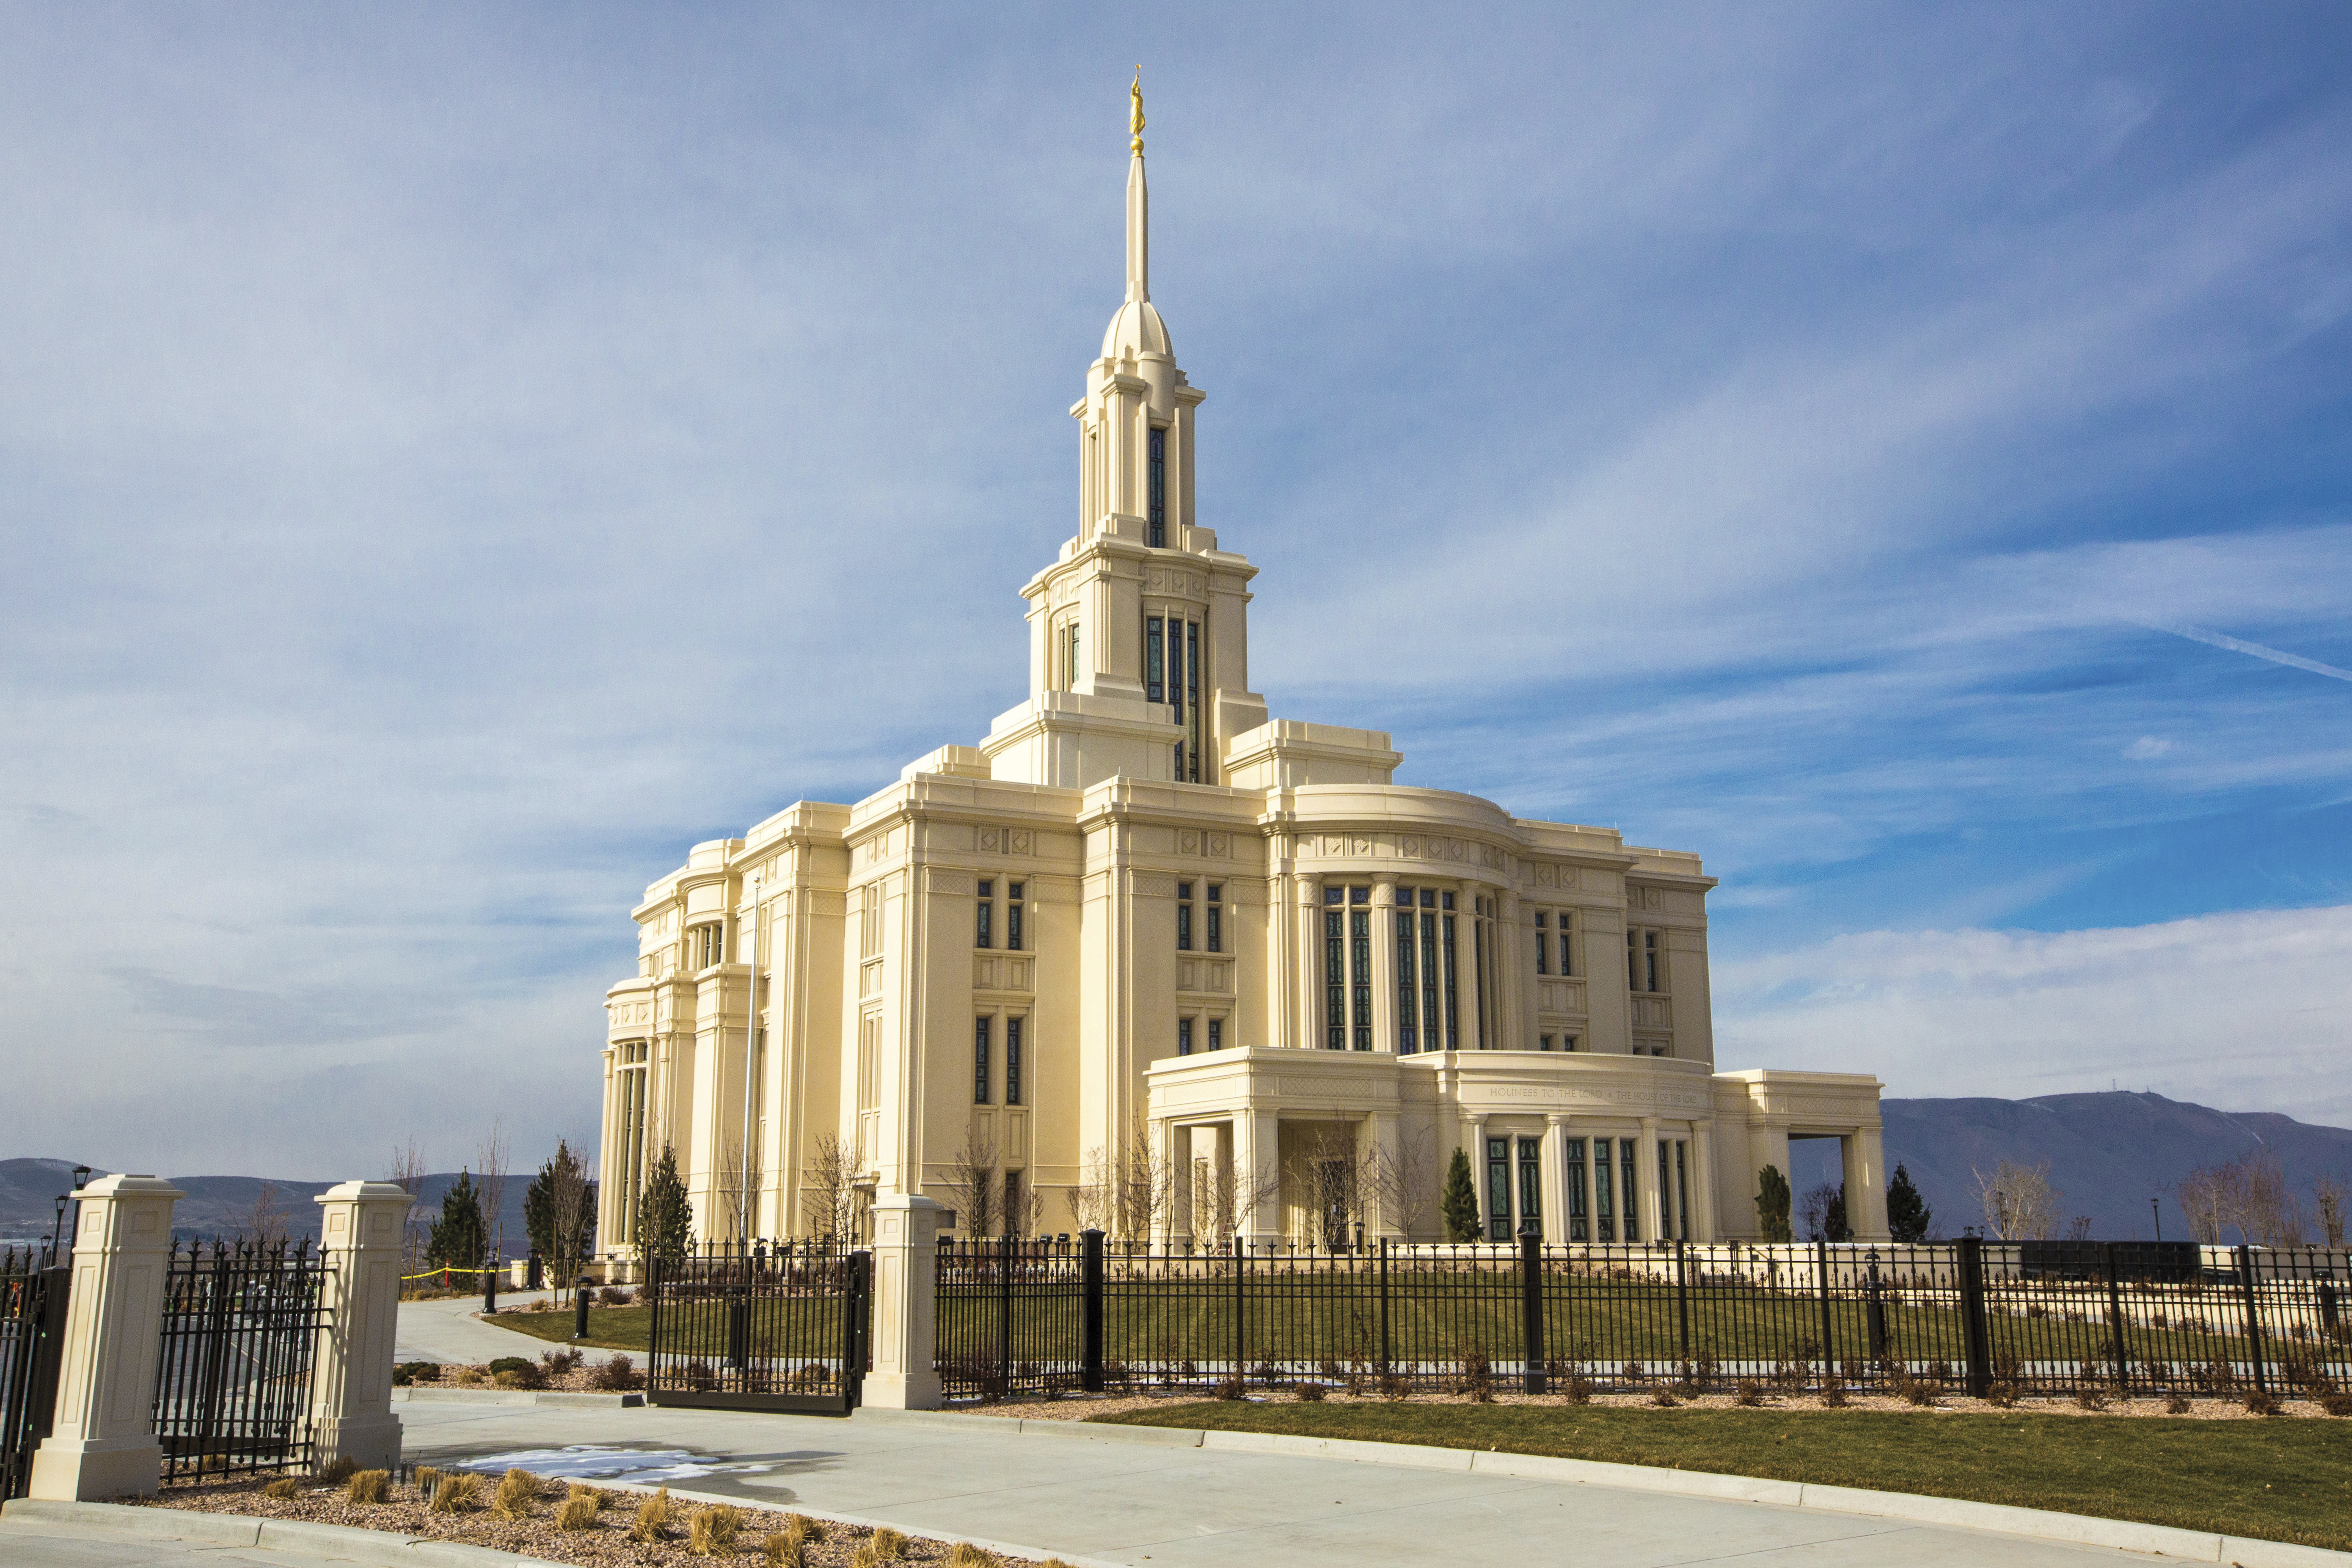 The east side of the Payson Utah Temple, its grounds, and its fence.